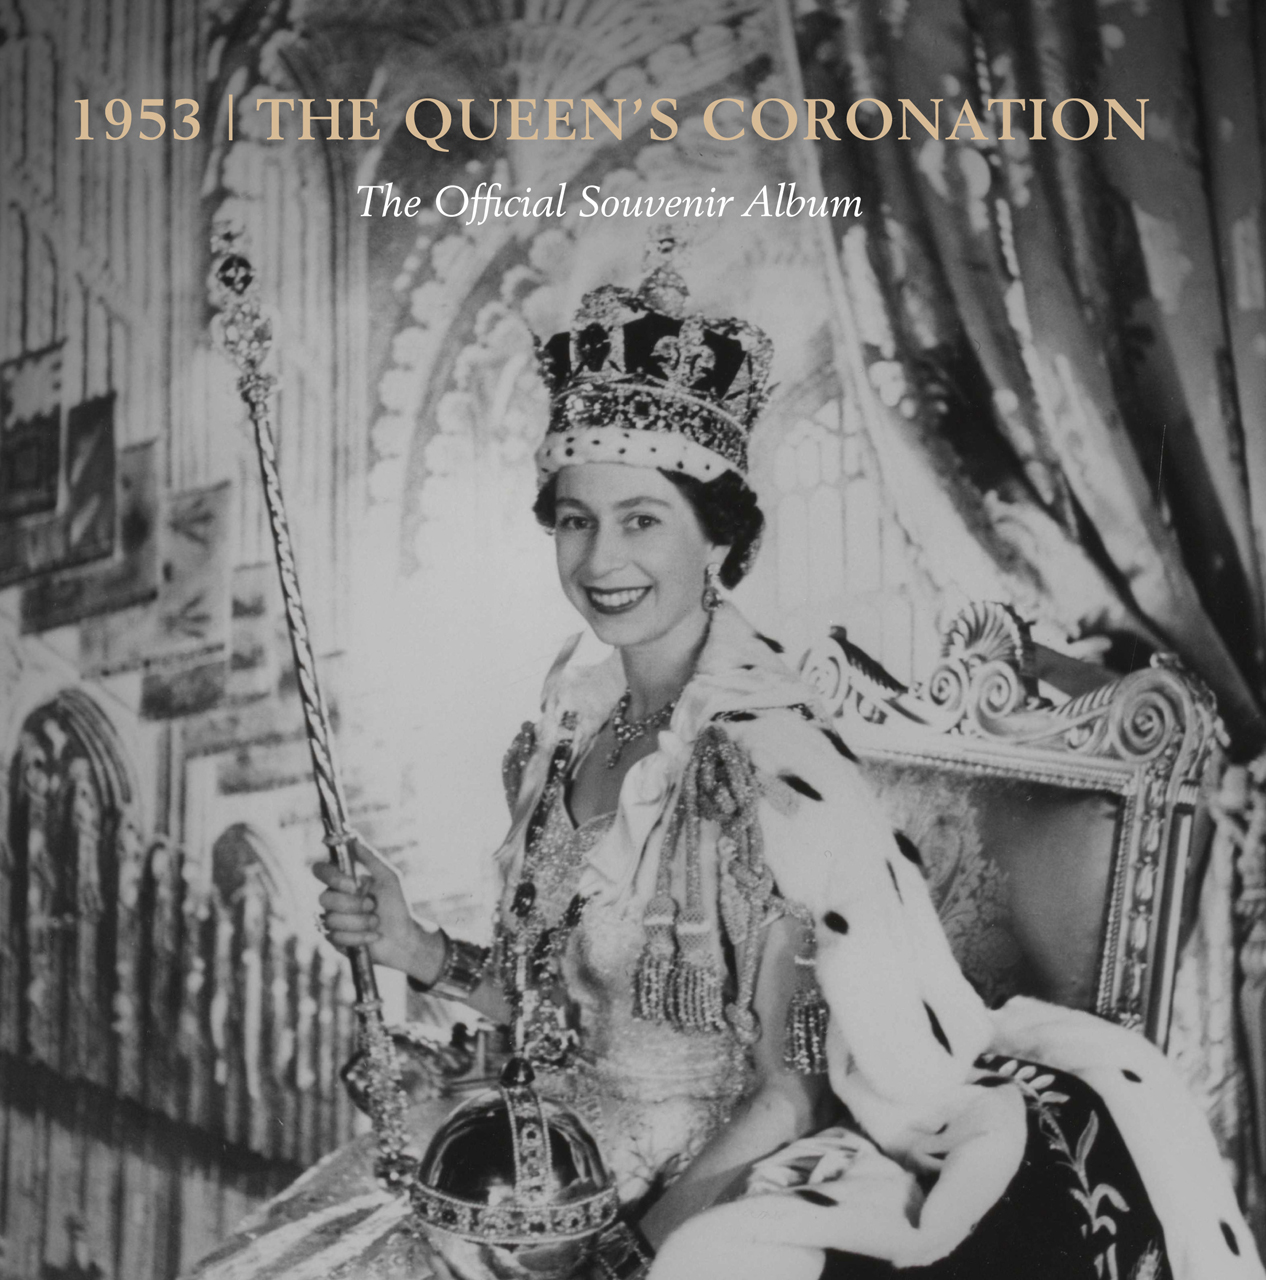 1953: The Queen's Coronation